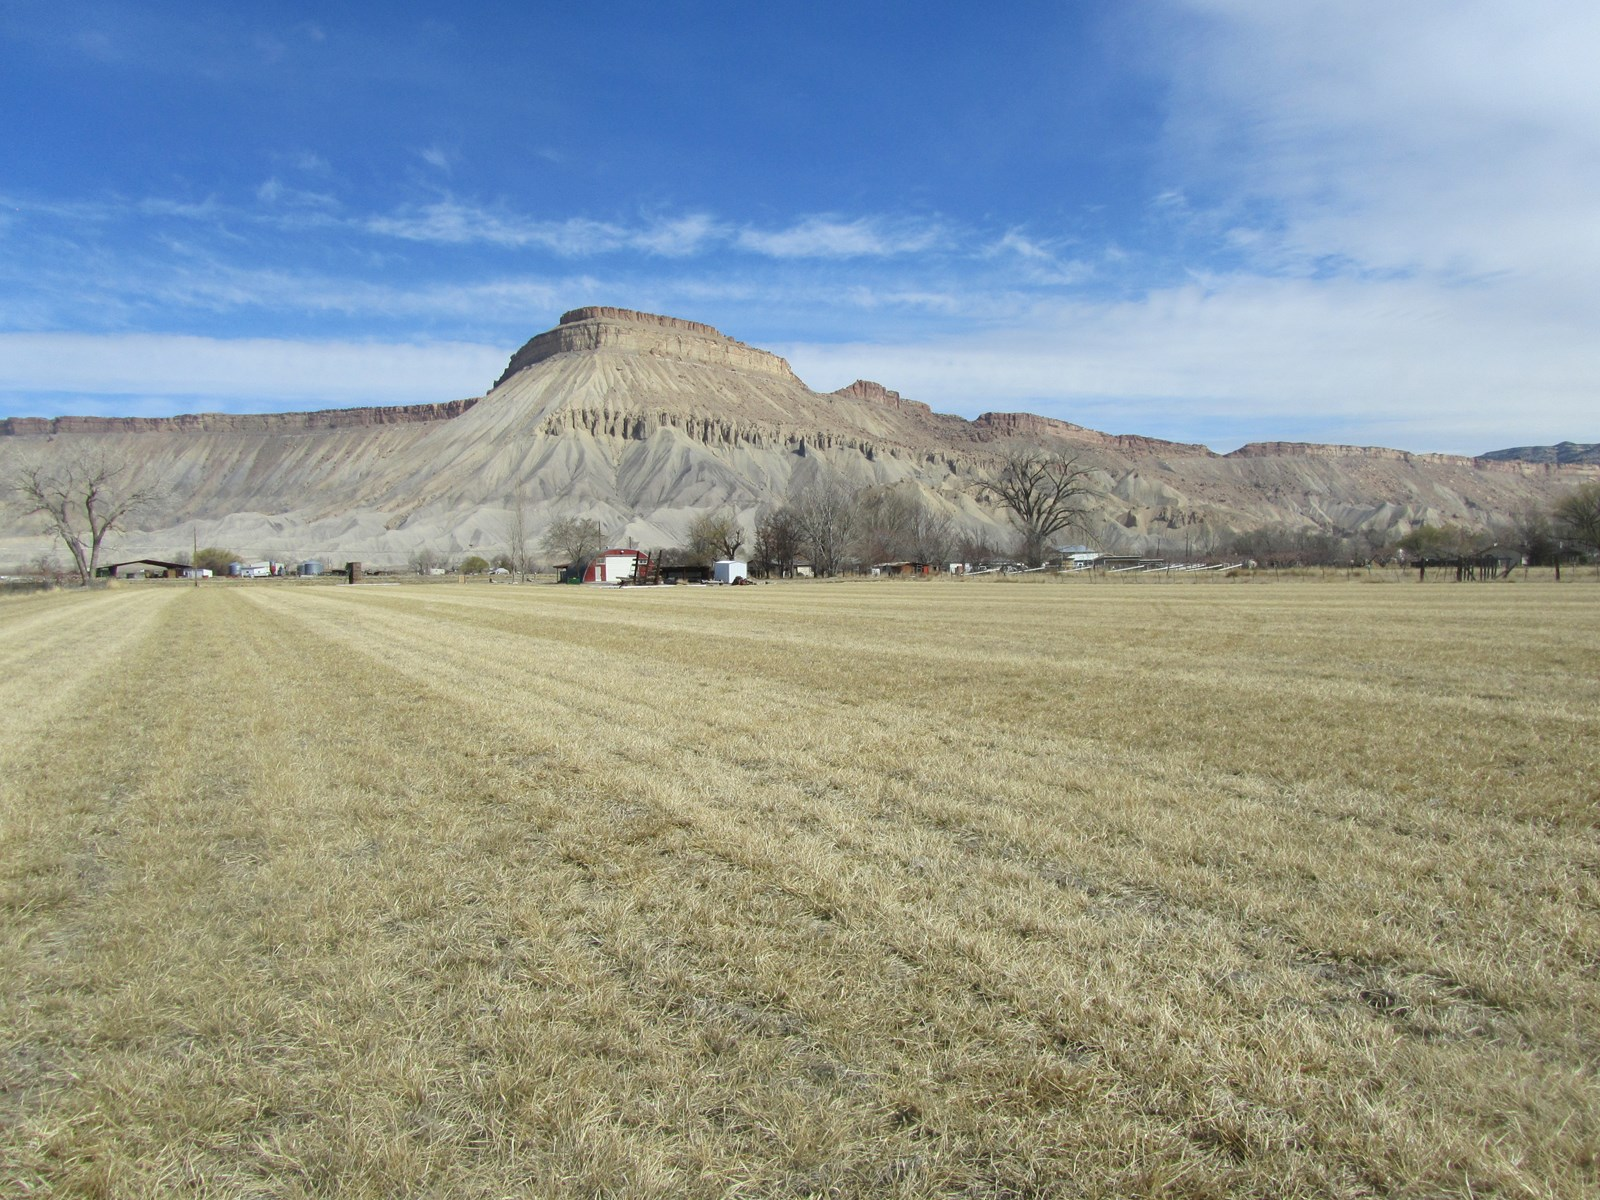 Acreage For Sale with Irrigation near Palisade, Colorado